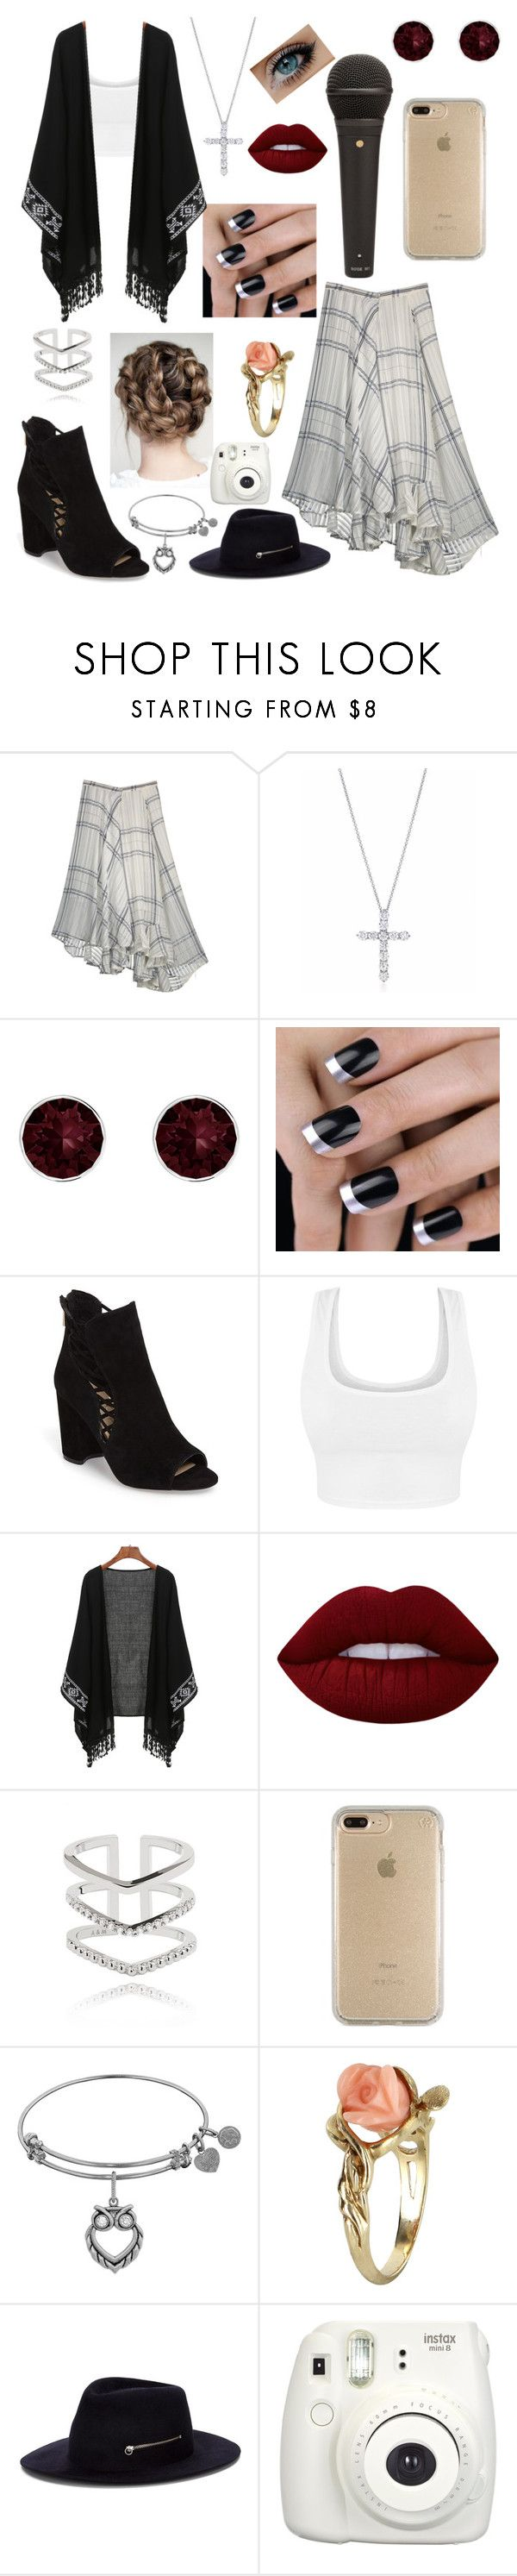 """""""'Jolene'"""" by caketime ❤ liked on Polyvore featuring Tiffany & Co., Pink Box, Jessica Simpson, Lime Crime, Astrid & Miyu, Speck, Vintage, Larose and Fujifilm"""